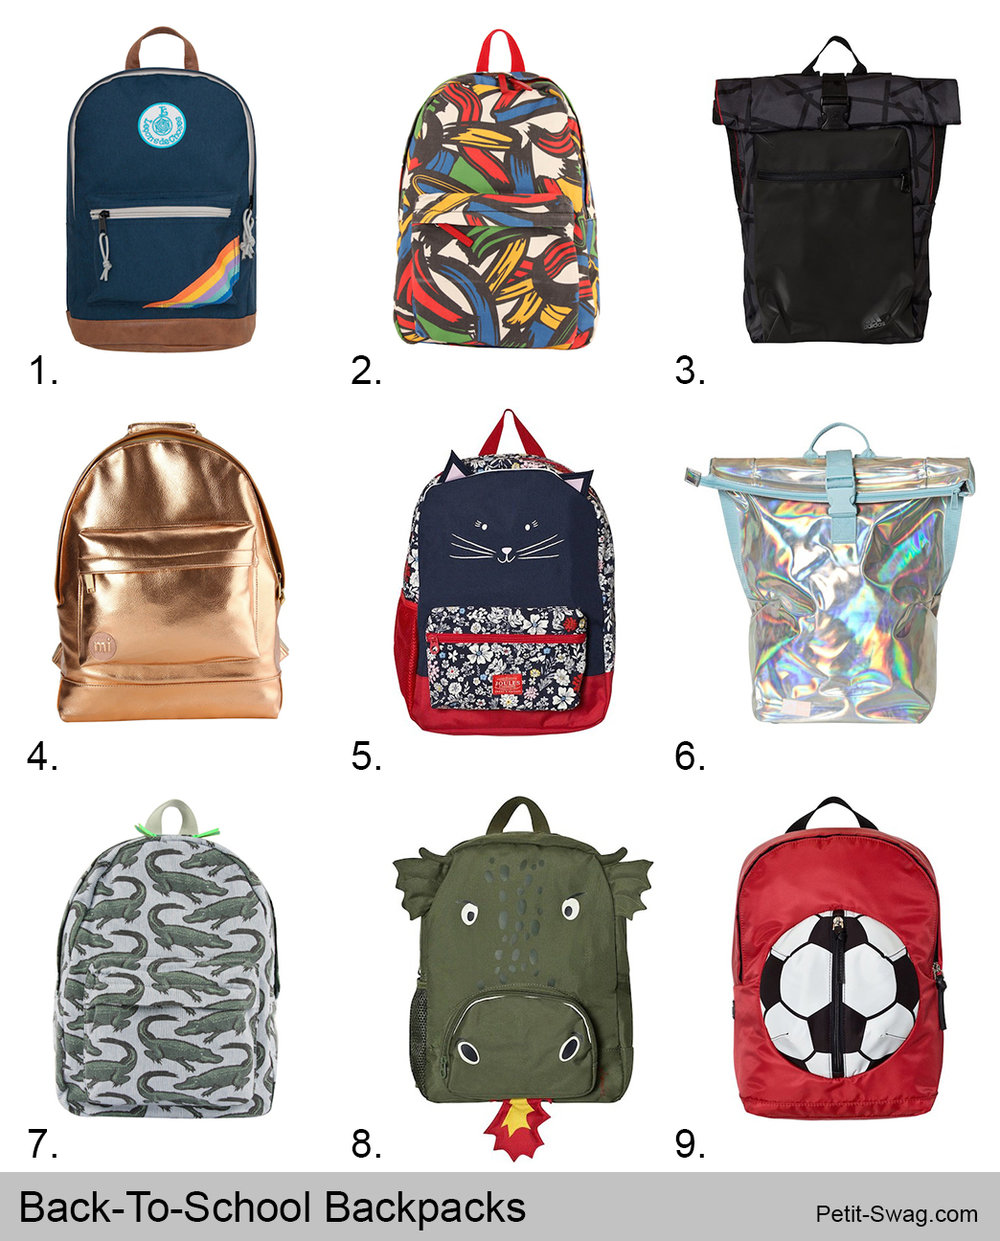 Back-To-School Backpacks | Petit-Swag.com.jpg